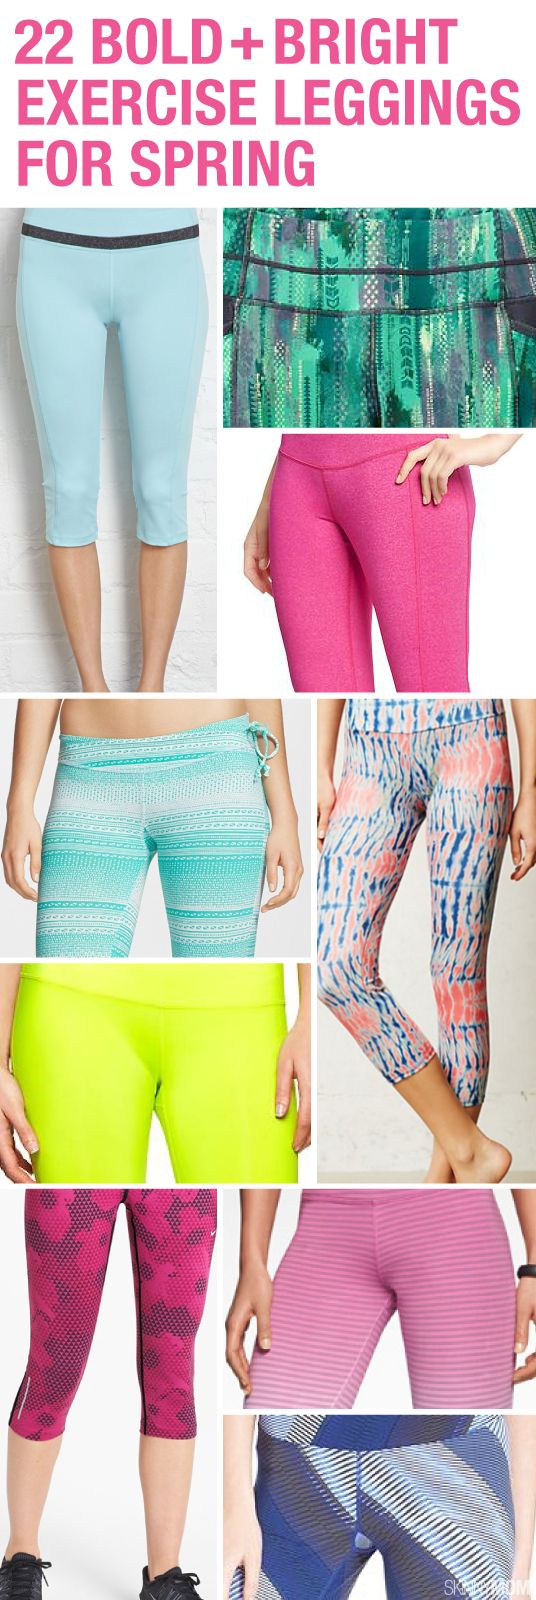 Go BOLD this Spring with your exercise leggings.